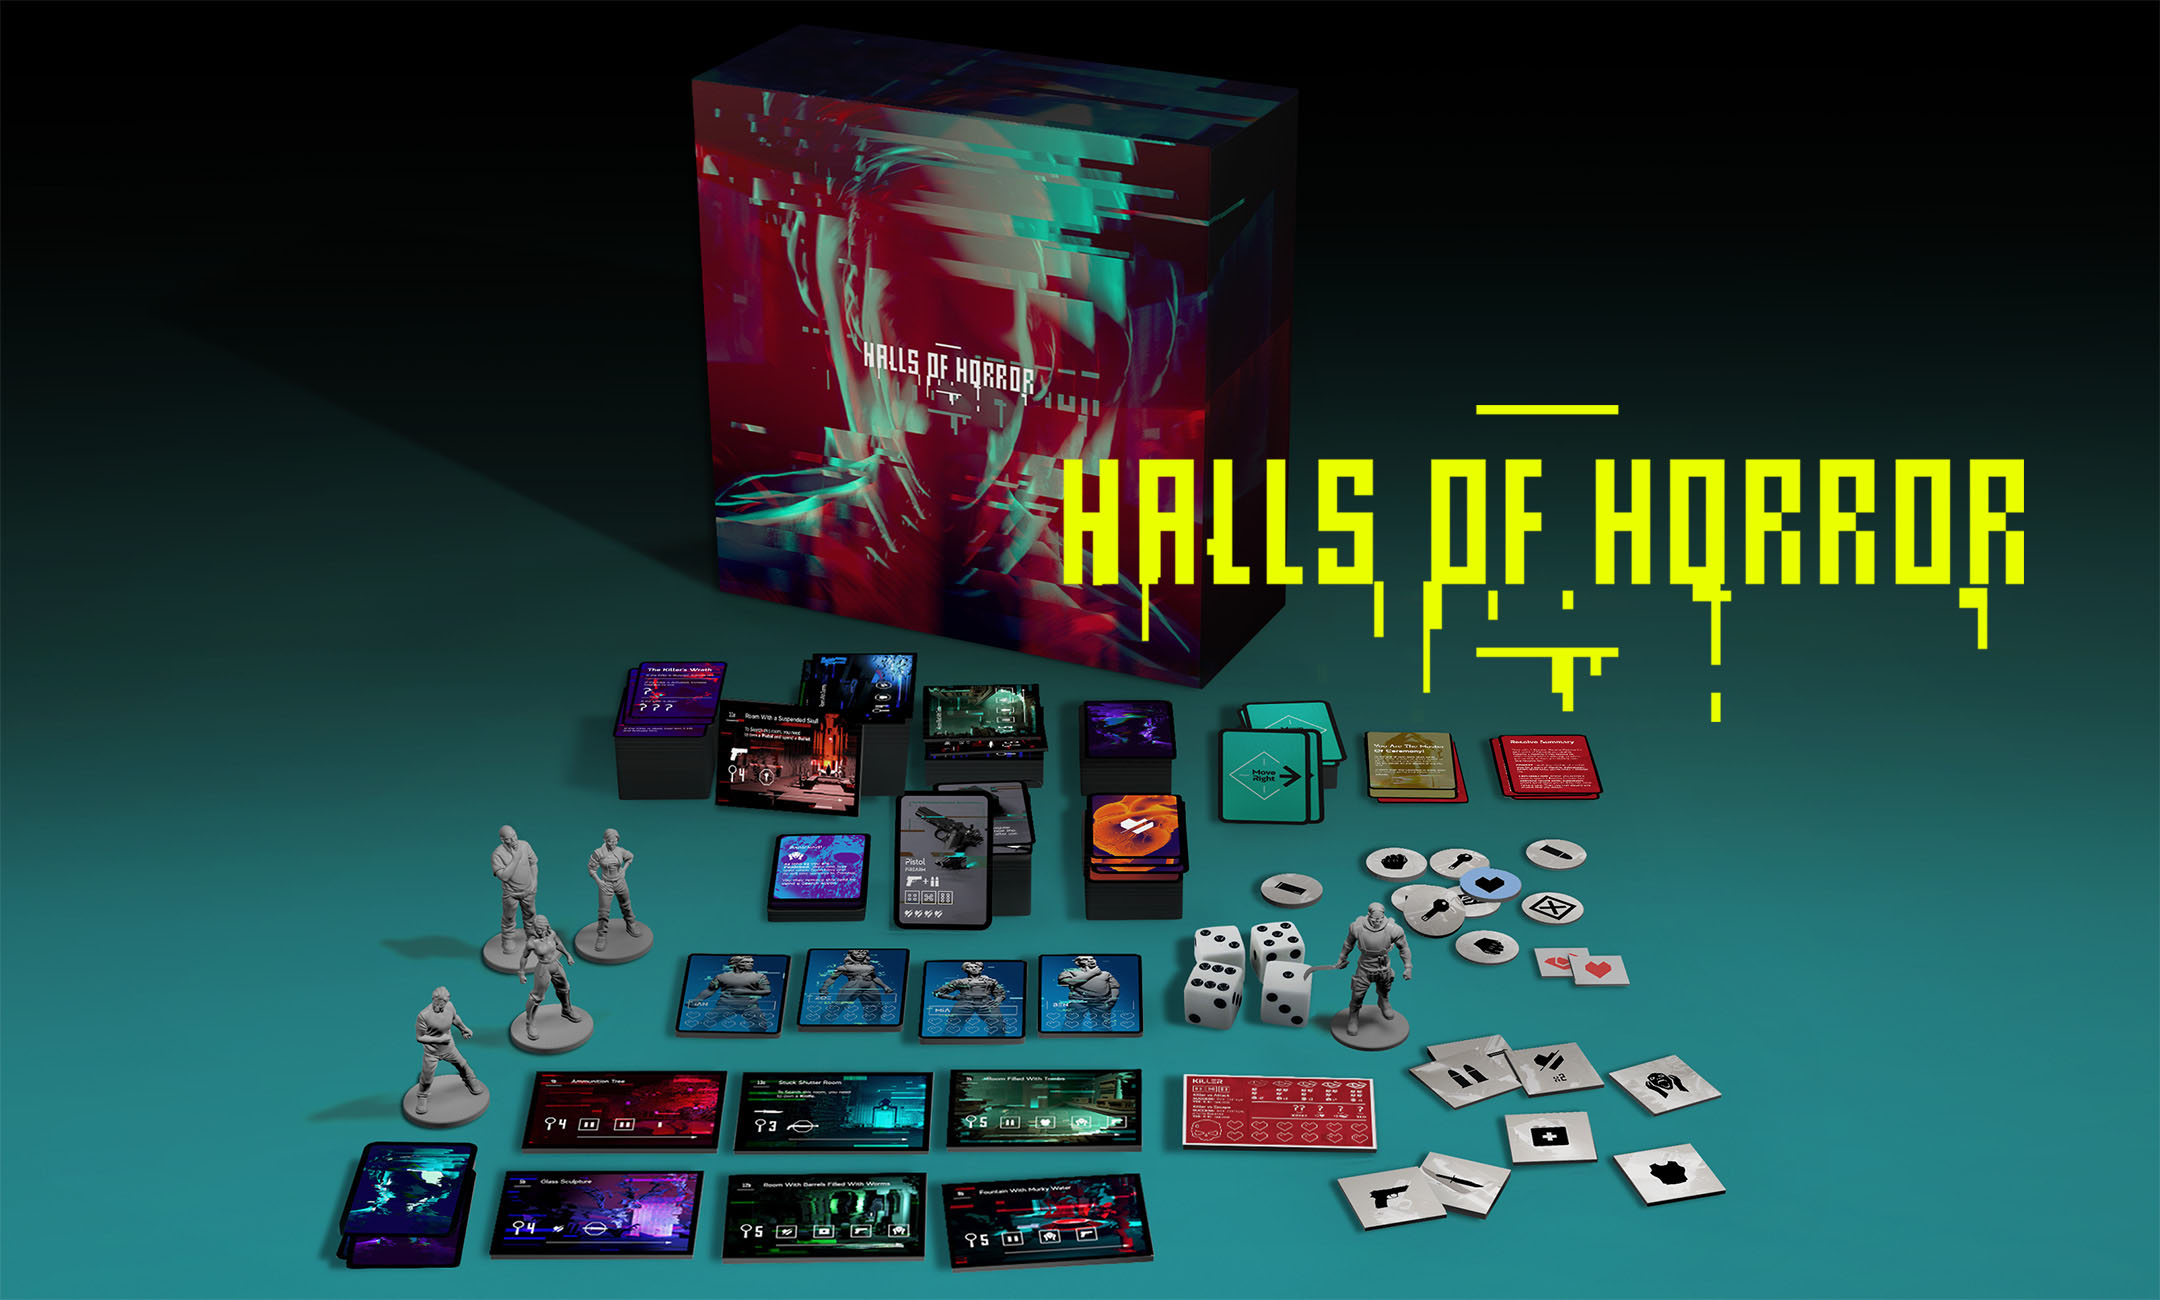 Halls of Horror Package